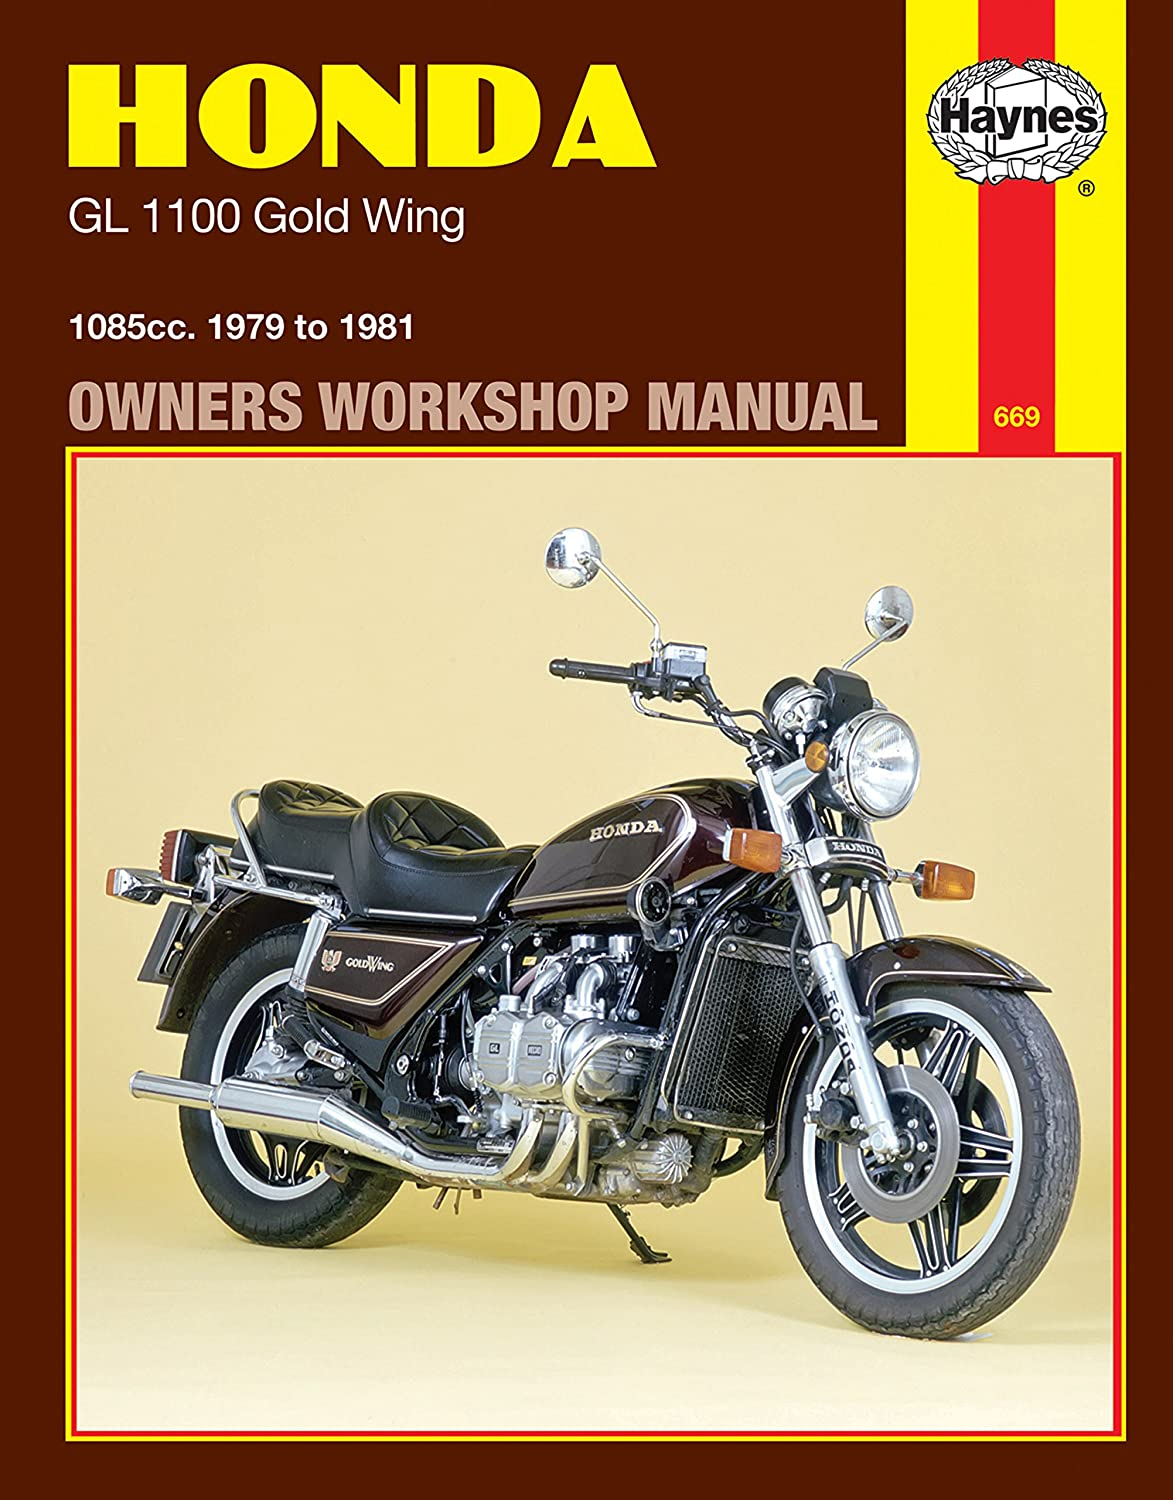 Amazon.com: 1979-1981 Honda Goldwing Gold Wing GL 1100 HAYNES REPAIR MANUAL  669: Automotive